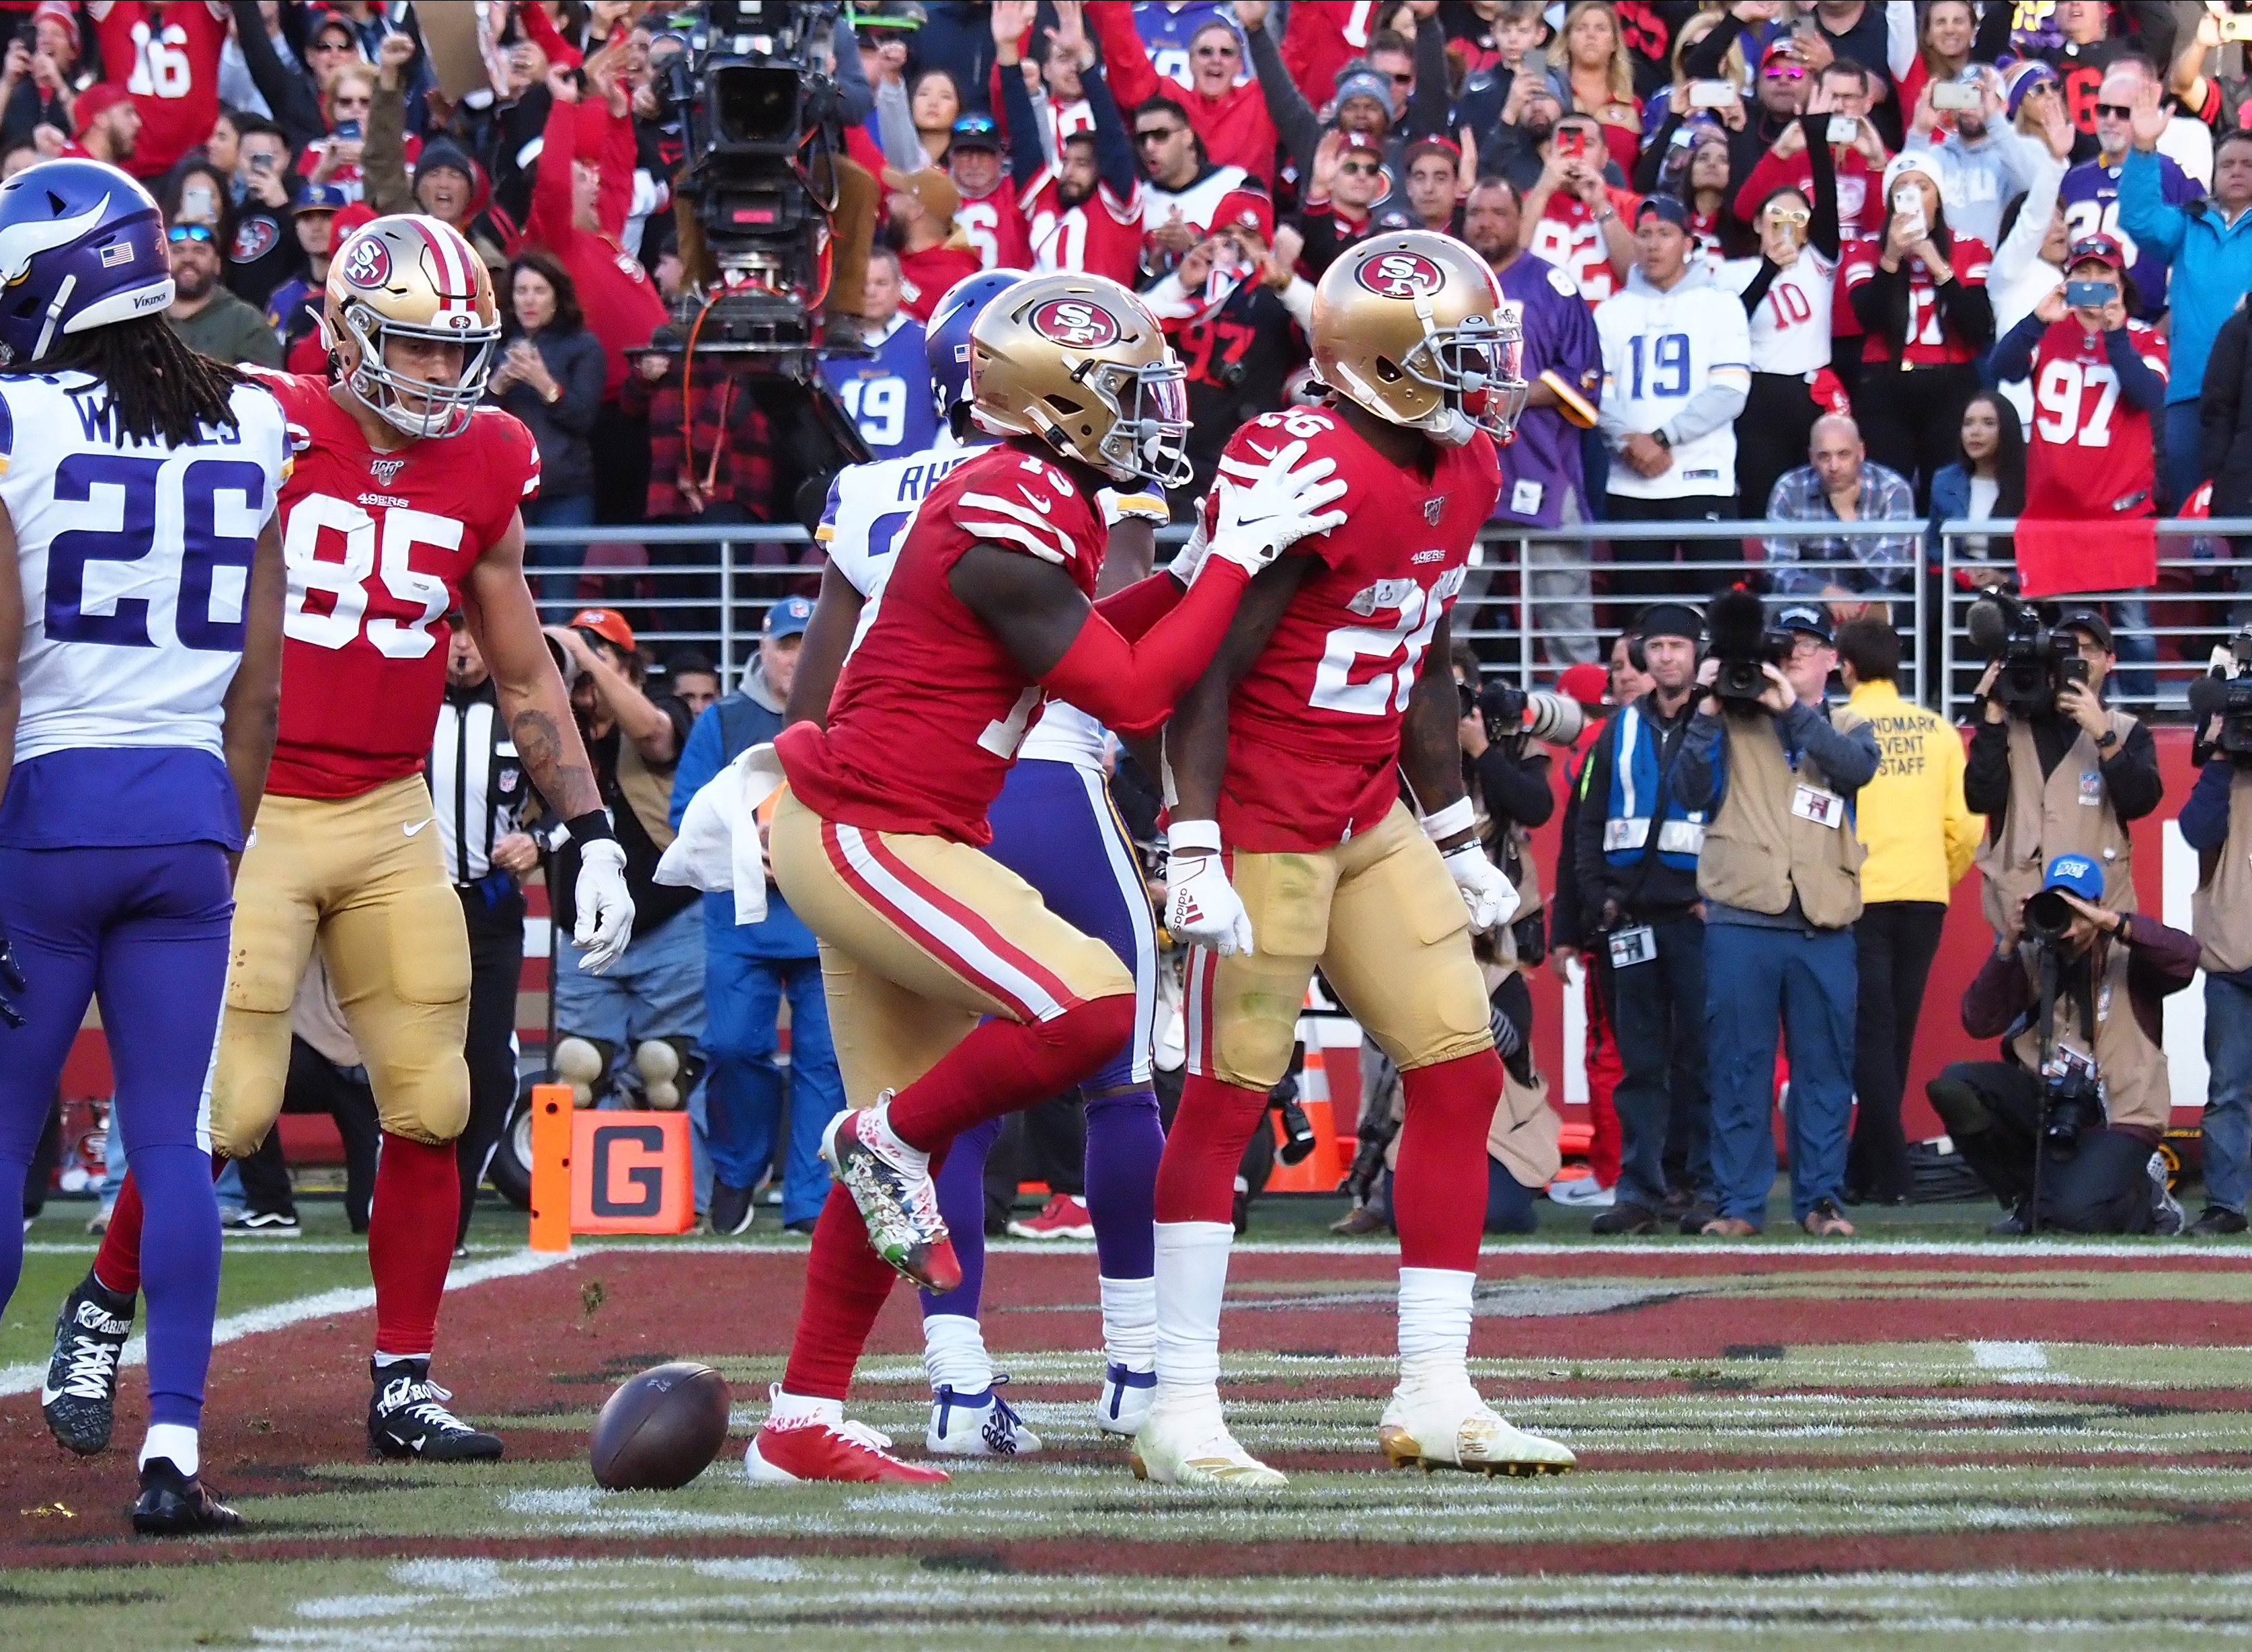 San Francisco 49ers running back Tevin Coleman celebrates after a touchdown against the Minnesota Vikings during the third quarter in a NFC Divisional Round playoff football game at Levi's Stadium.